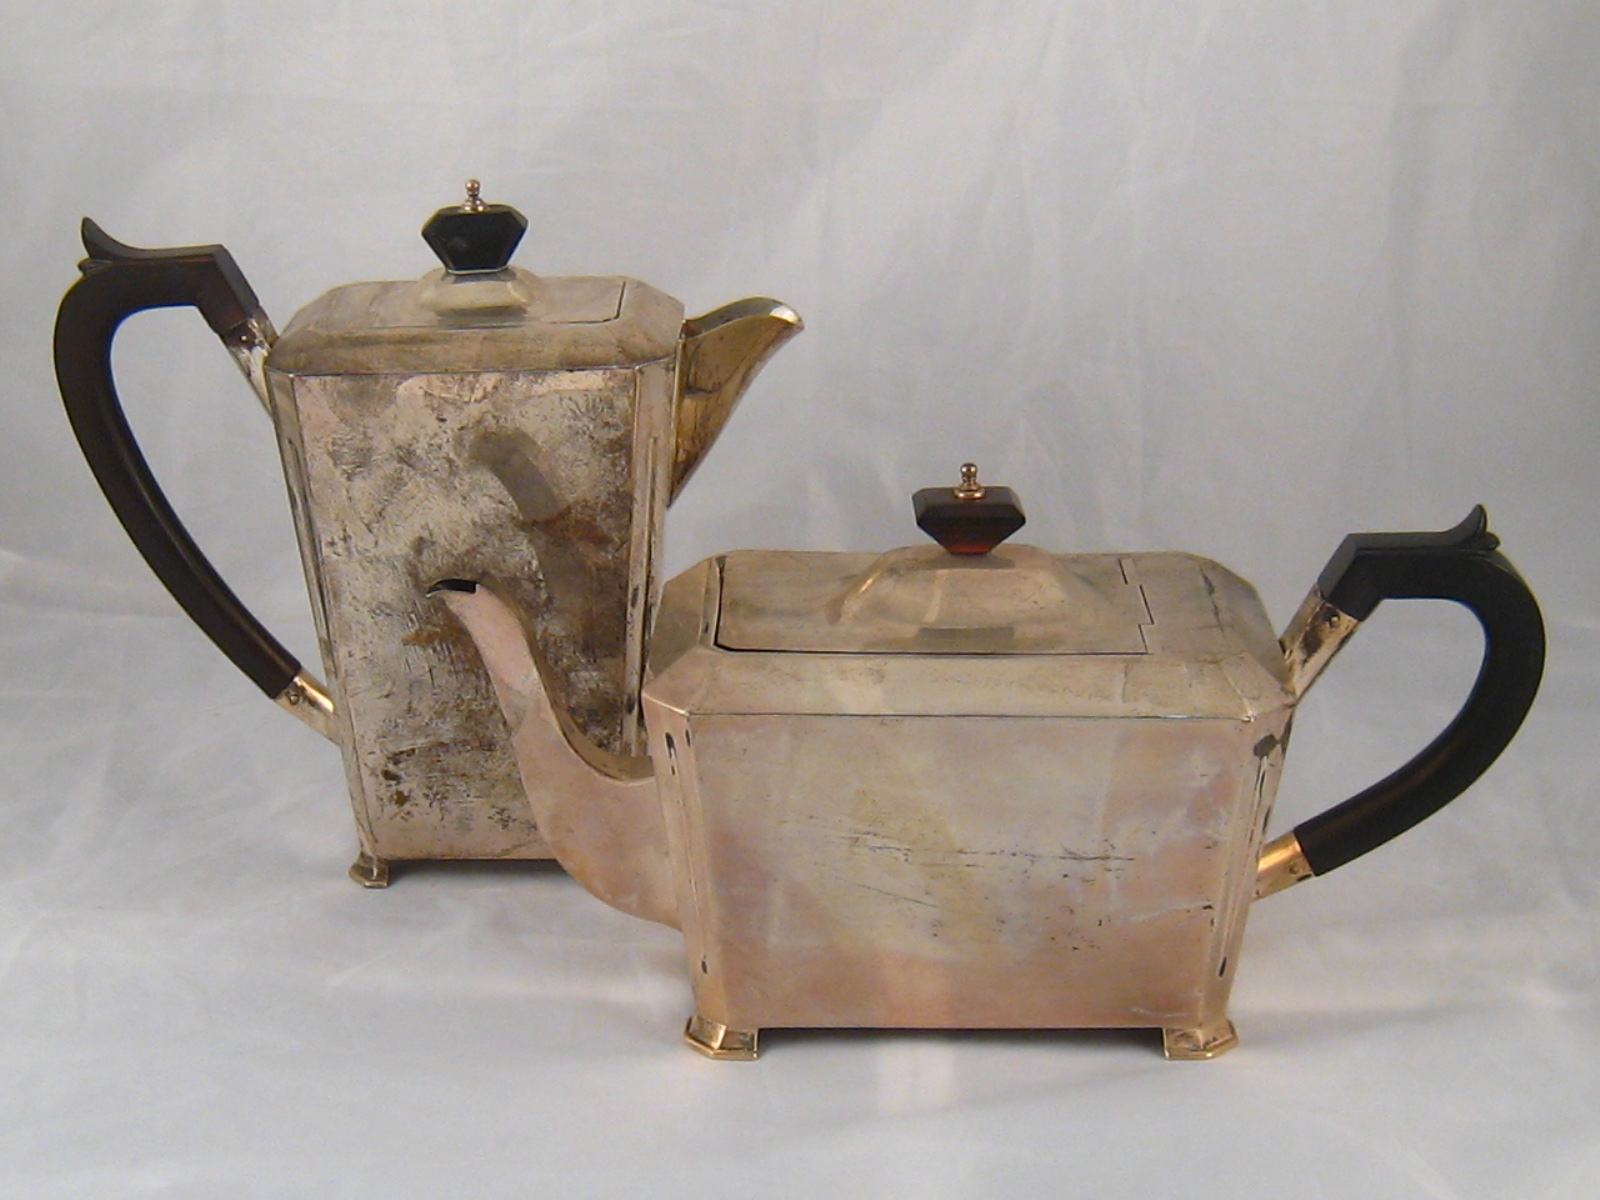 Lot 216 - An Art Deco silver teapot and water jug, each on four feet with box hinge lid,  S Blankensee & Sons,